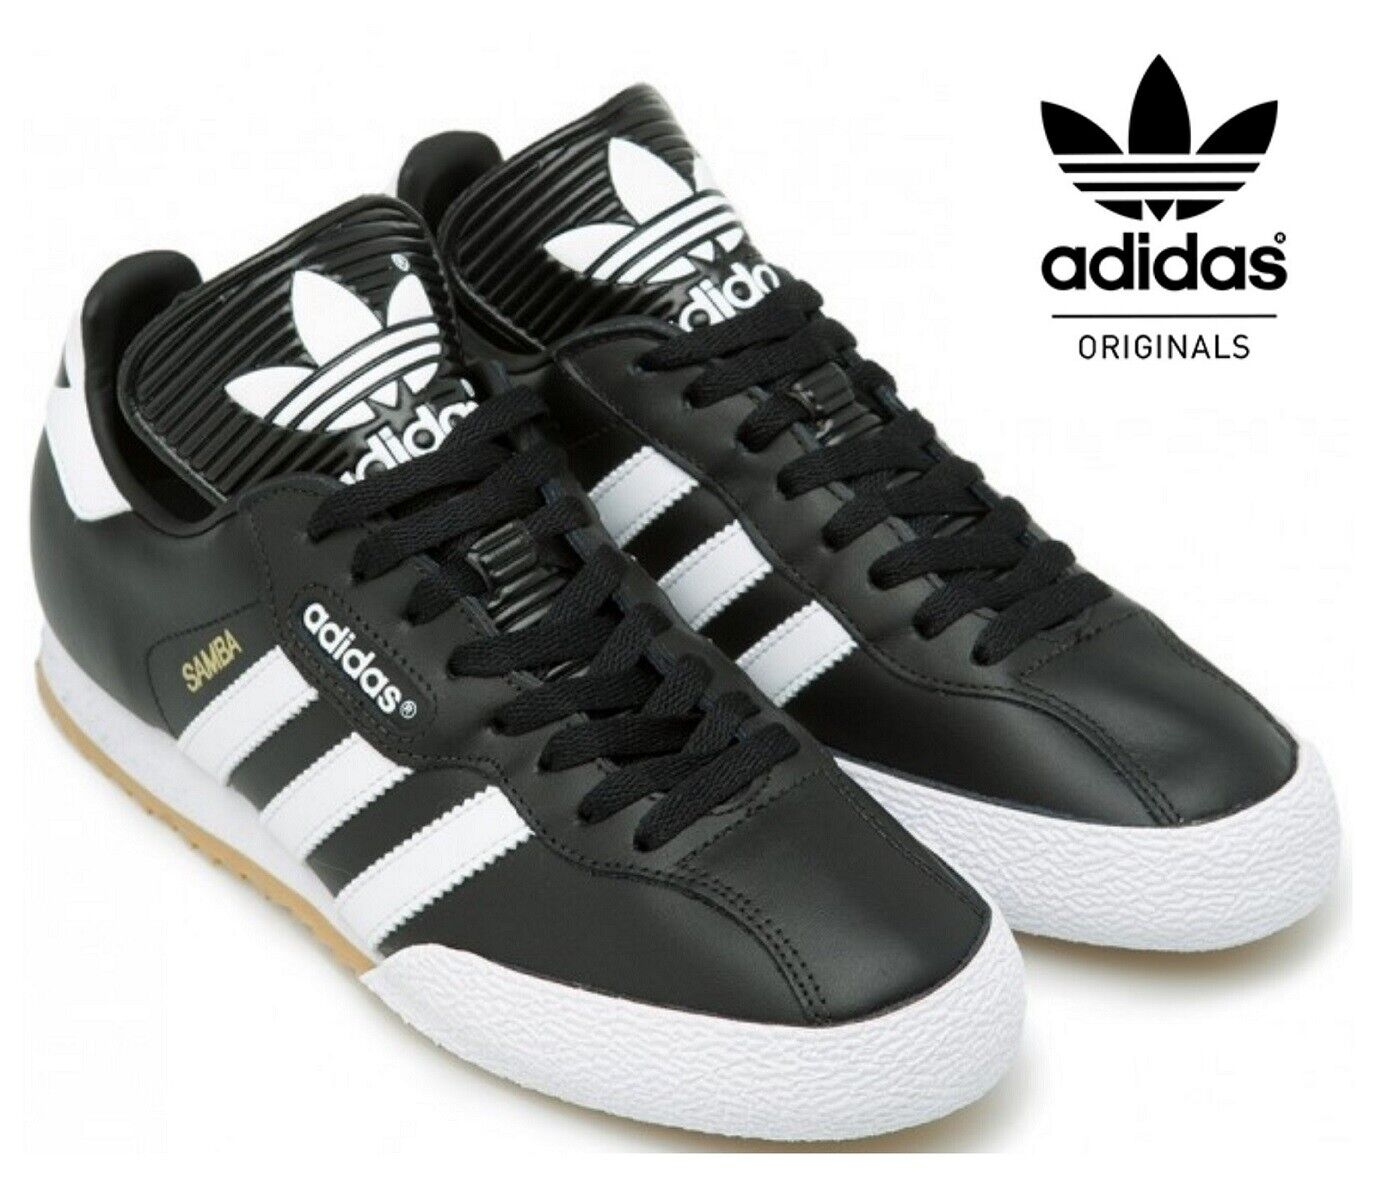 adidas Originals Mens Samba Classic OG Trainers Black.All size.Made in Germany